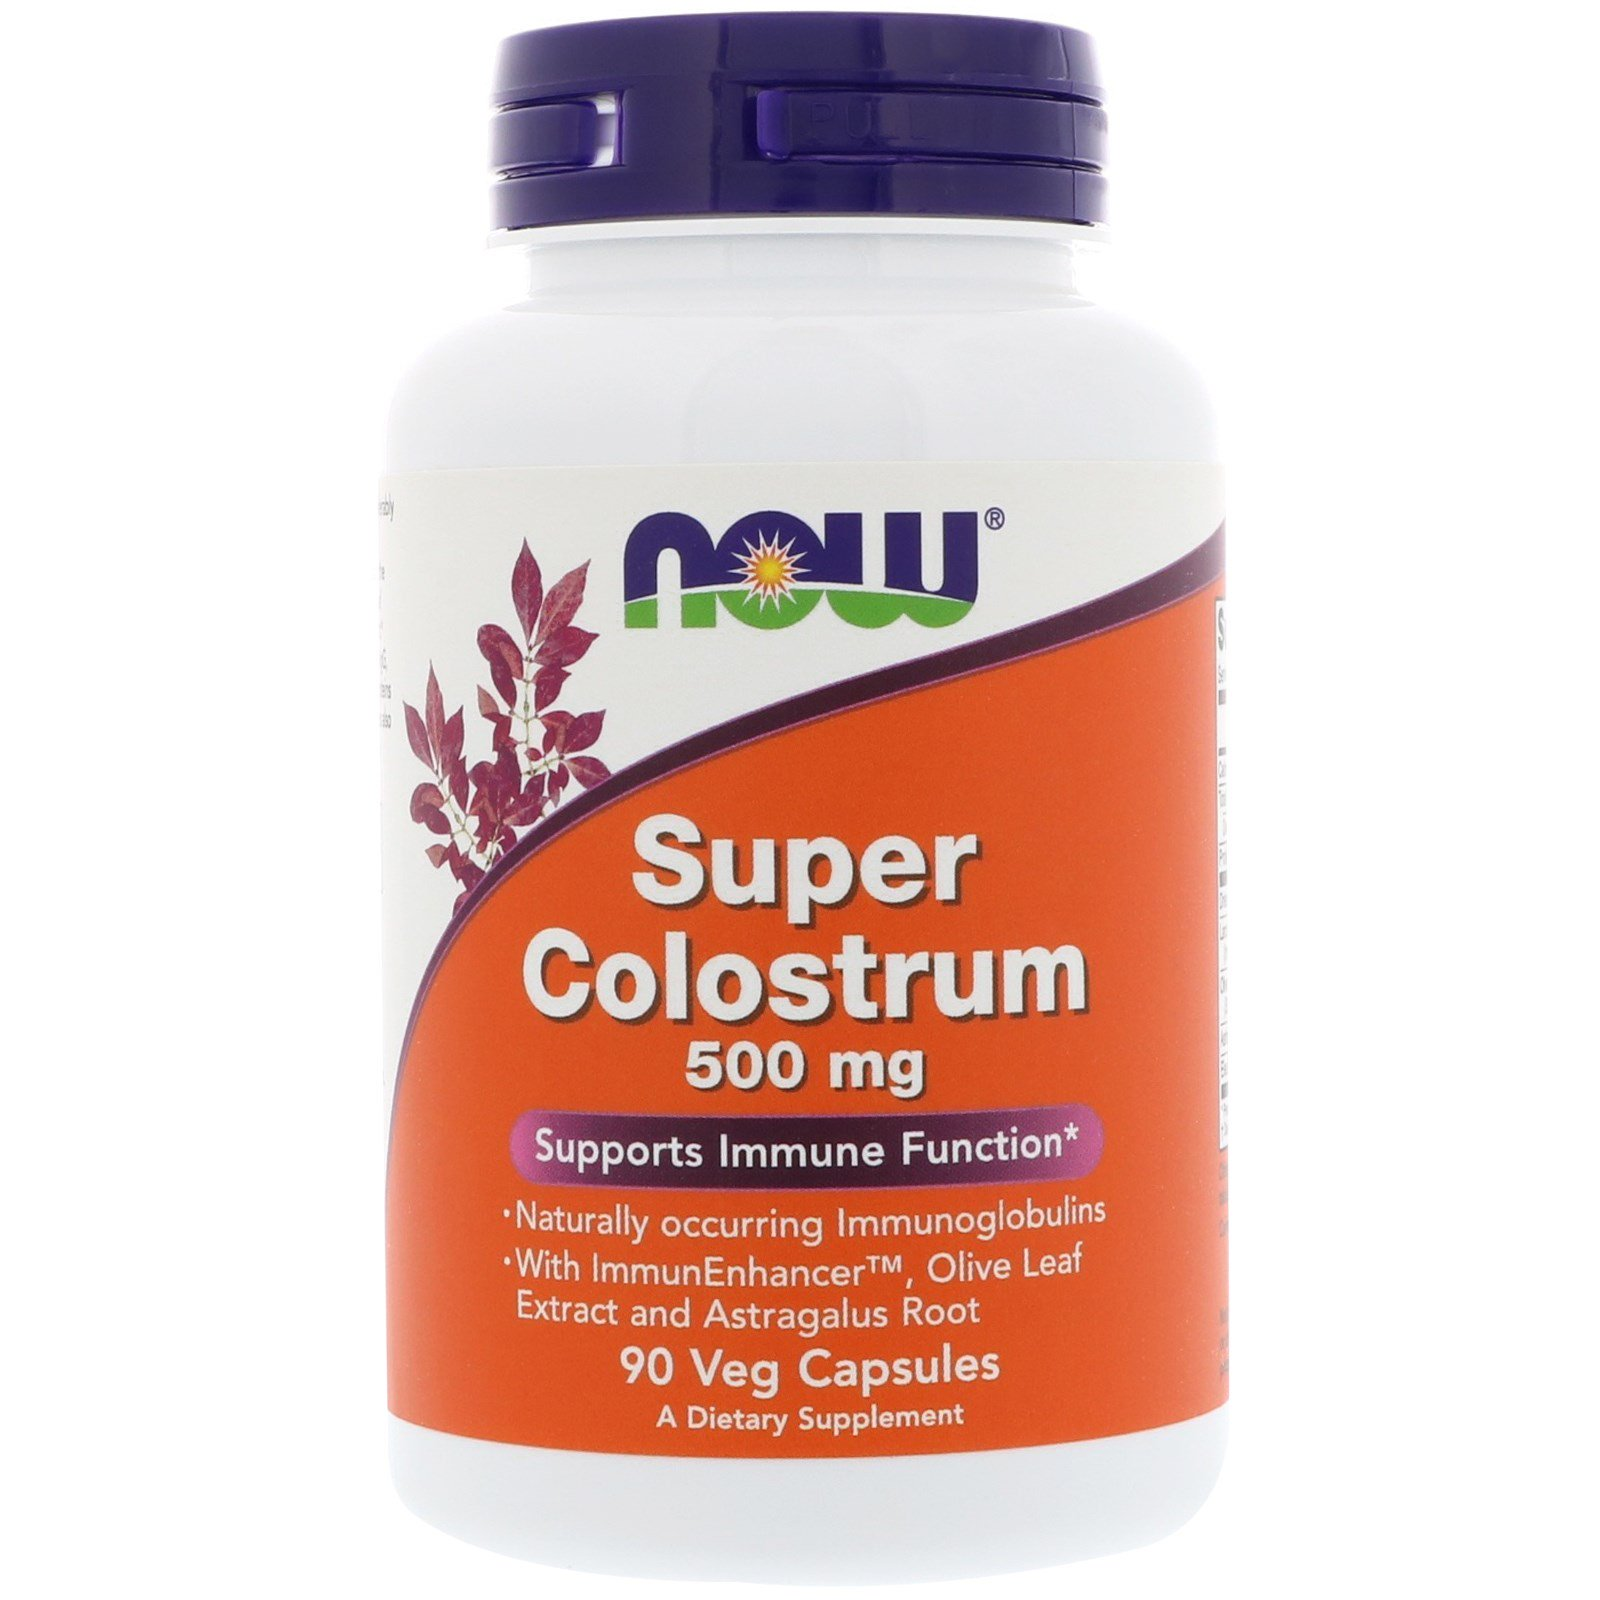 Super Colostrum, Супер Колострум, Молозиво 500 мг - 90 капсул